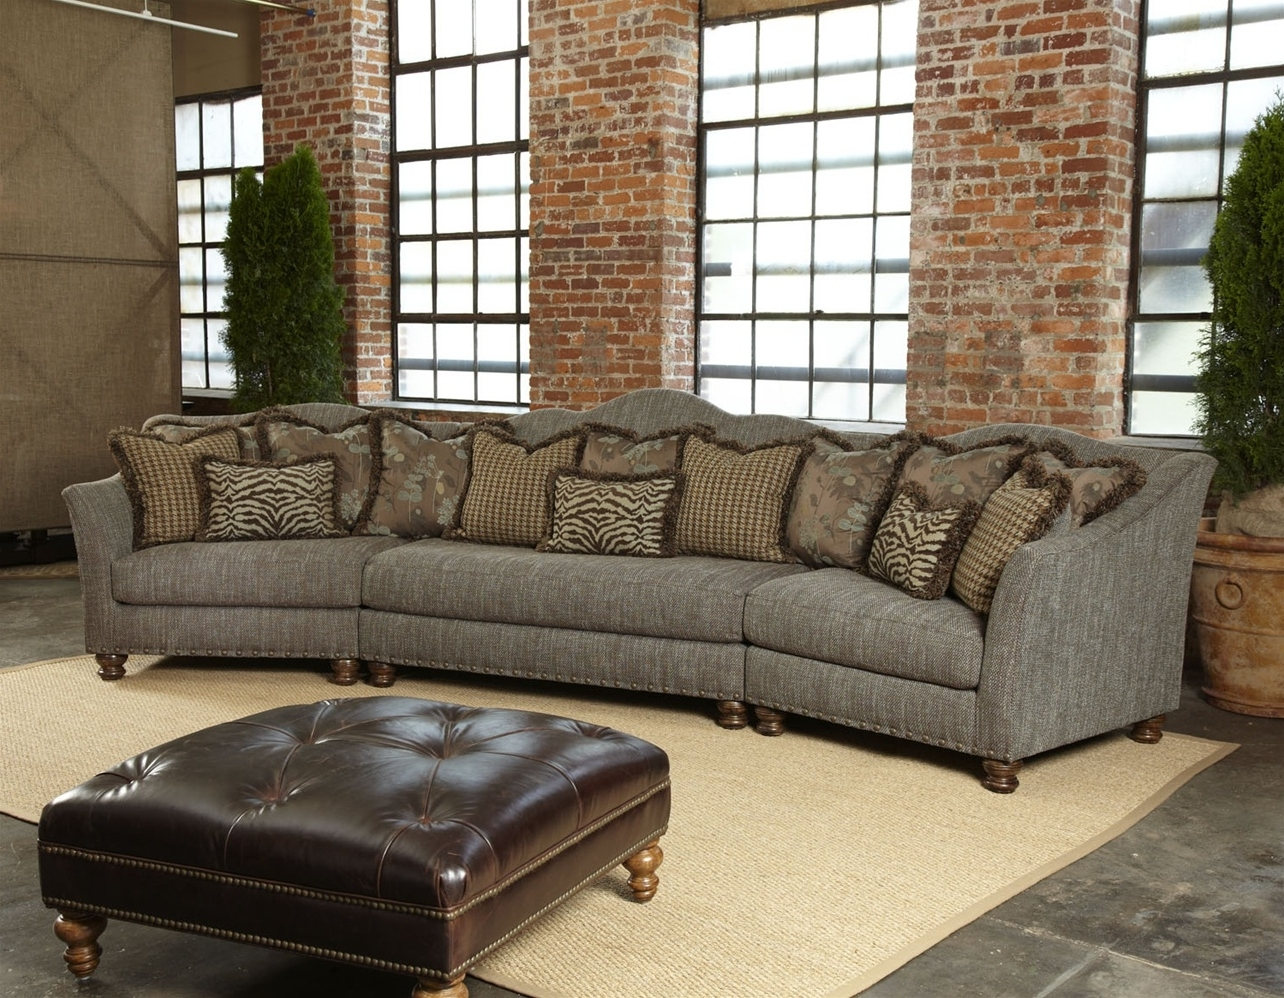 Popular High End Sectional Sofas 51 For Your Condo Sectional Sofa With Regard To Most Recent High End Sectional Sofas (View 9 of 15)